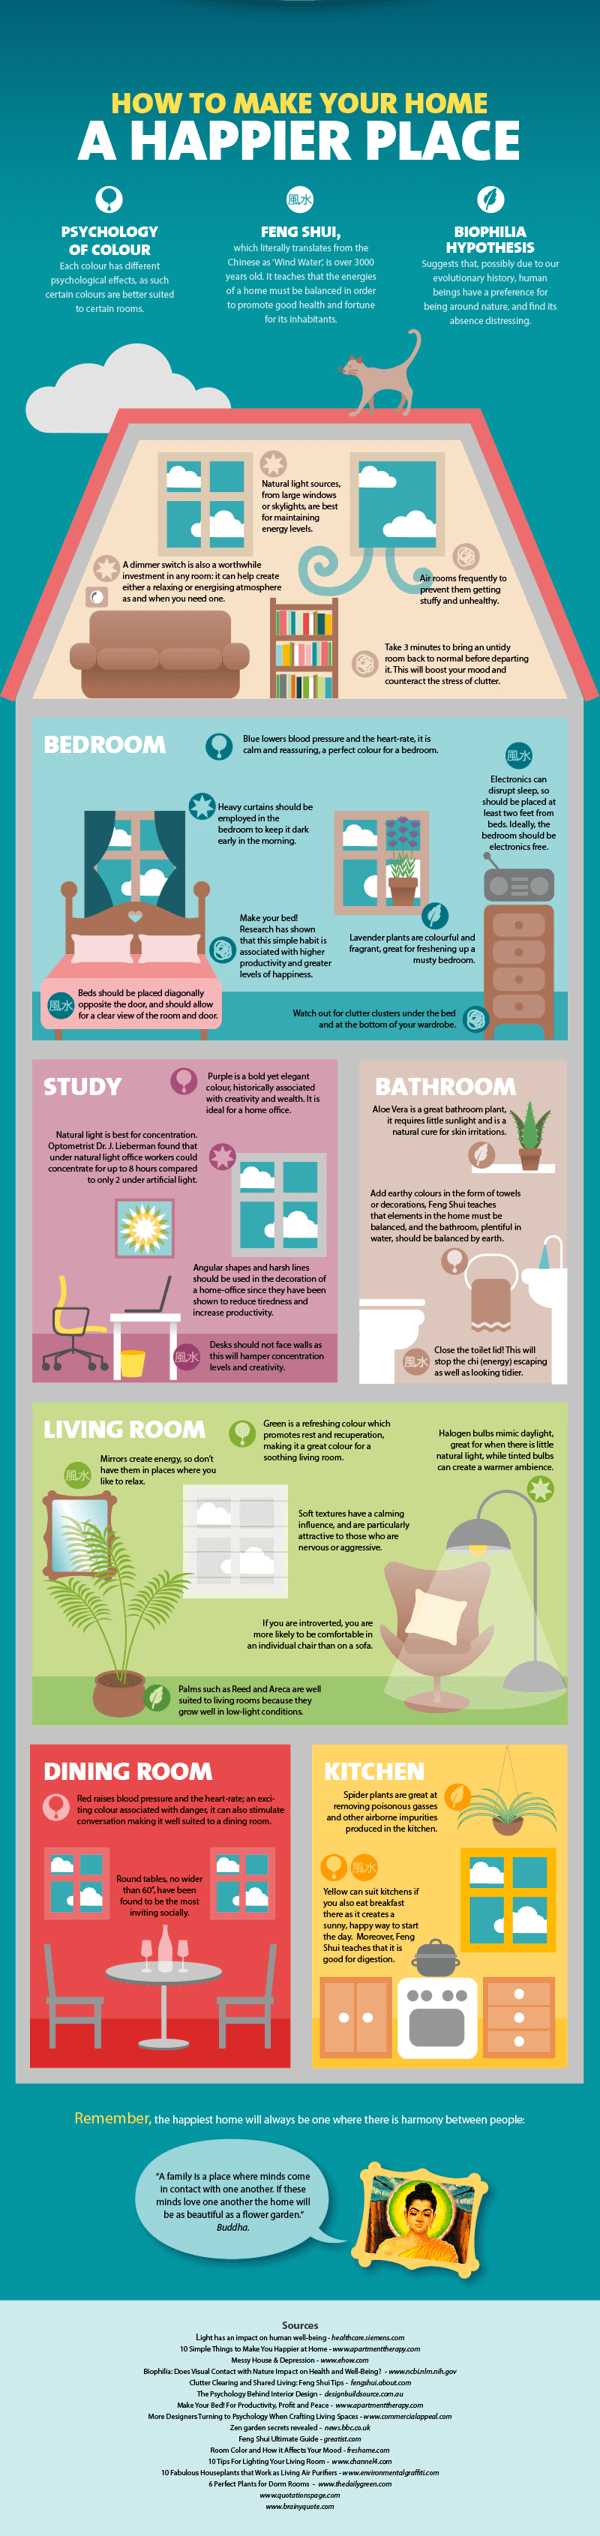 Image titled How to Make Your Home a Happier Place